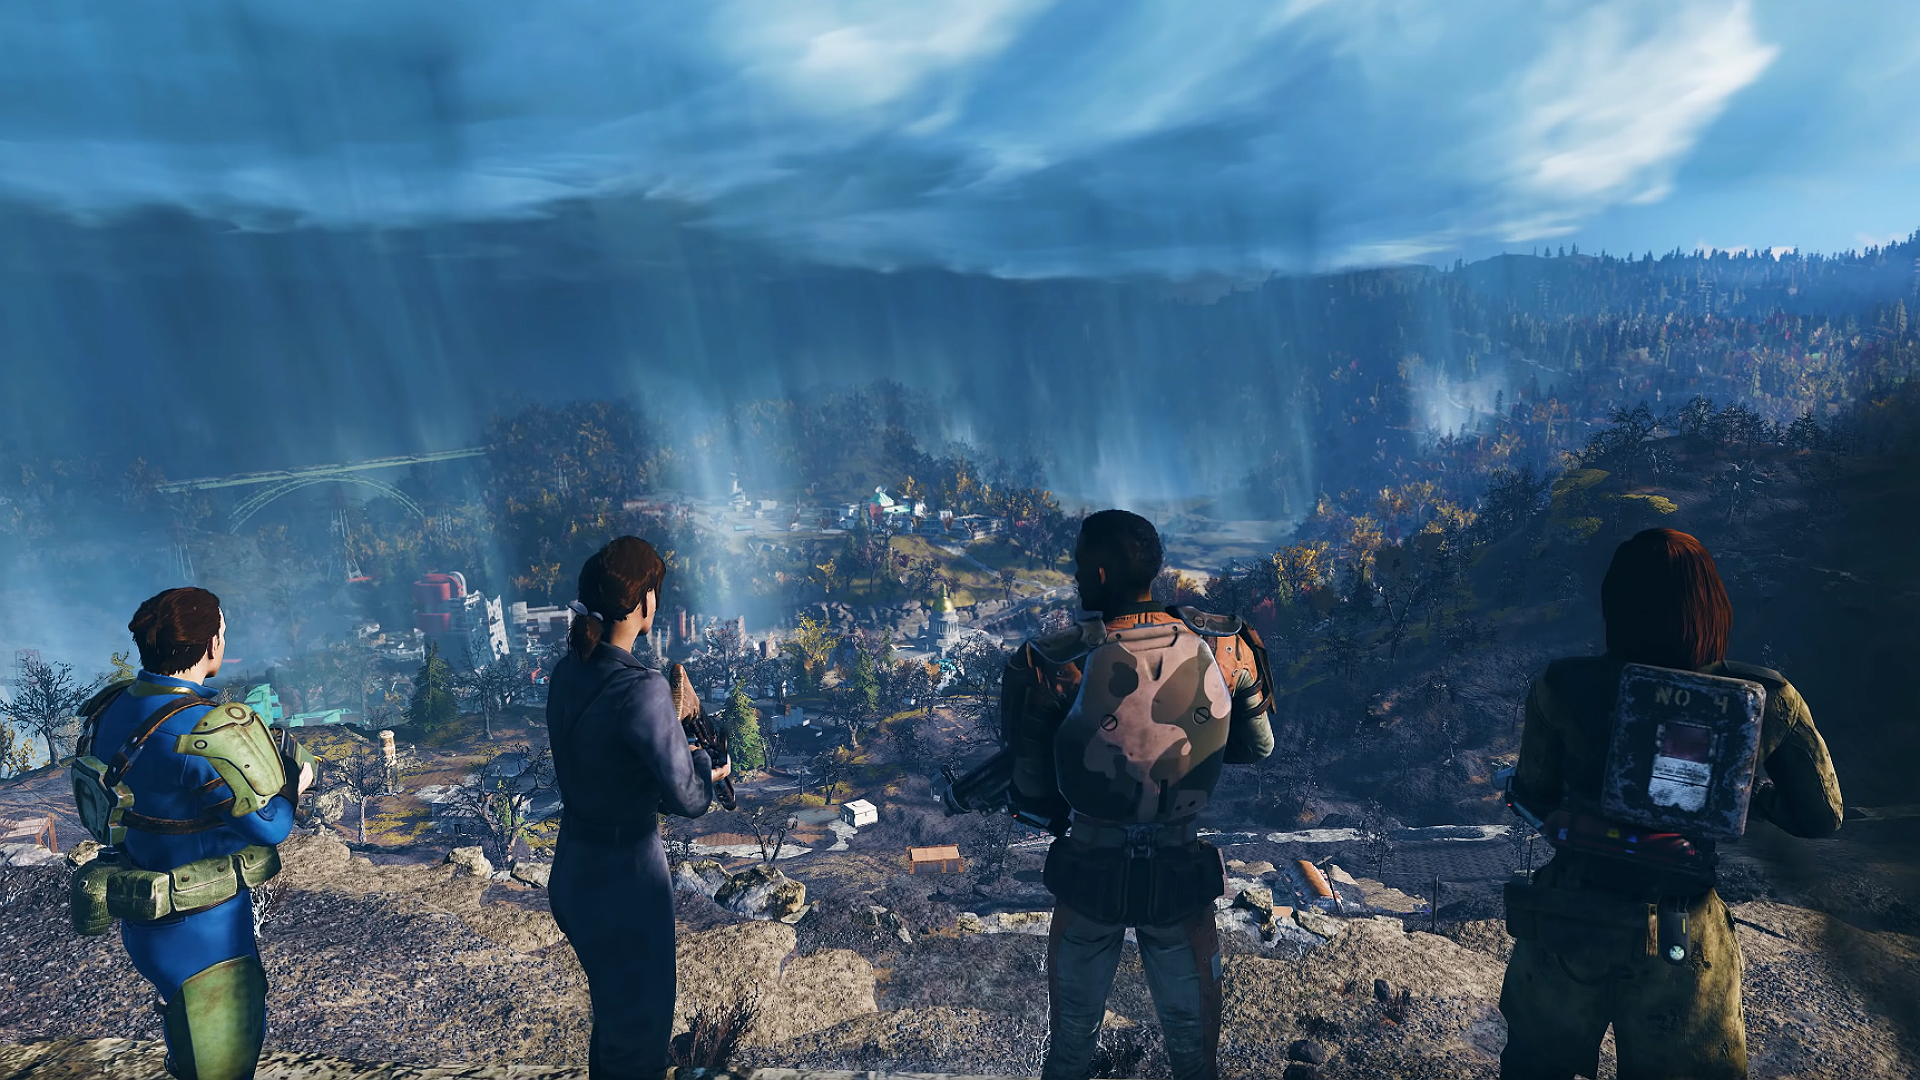 Fallout 76 Fallout 76 Release Date And Multiplayer News All The Latest